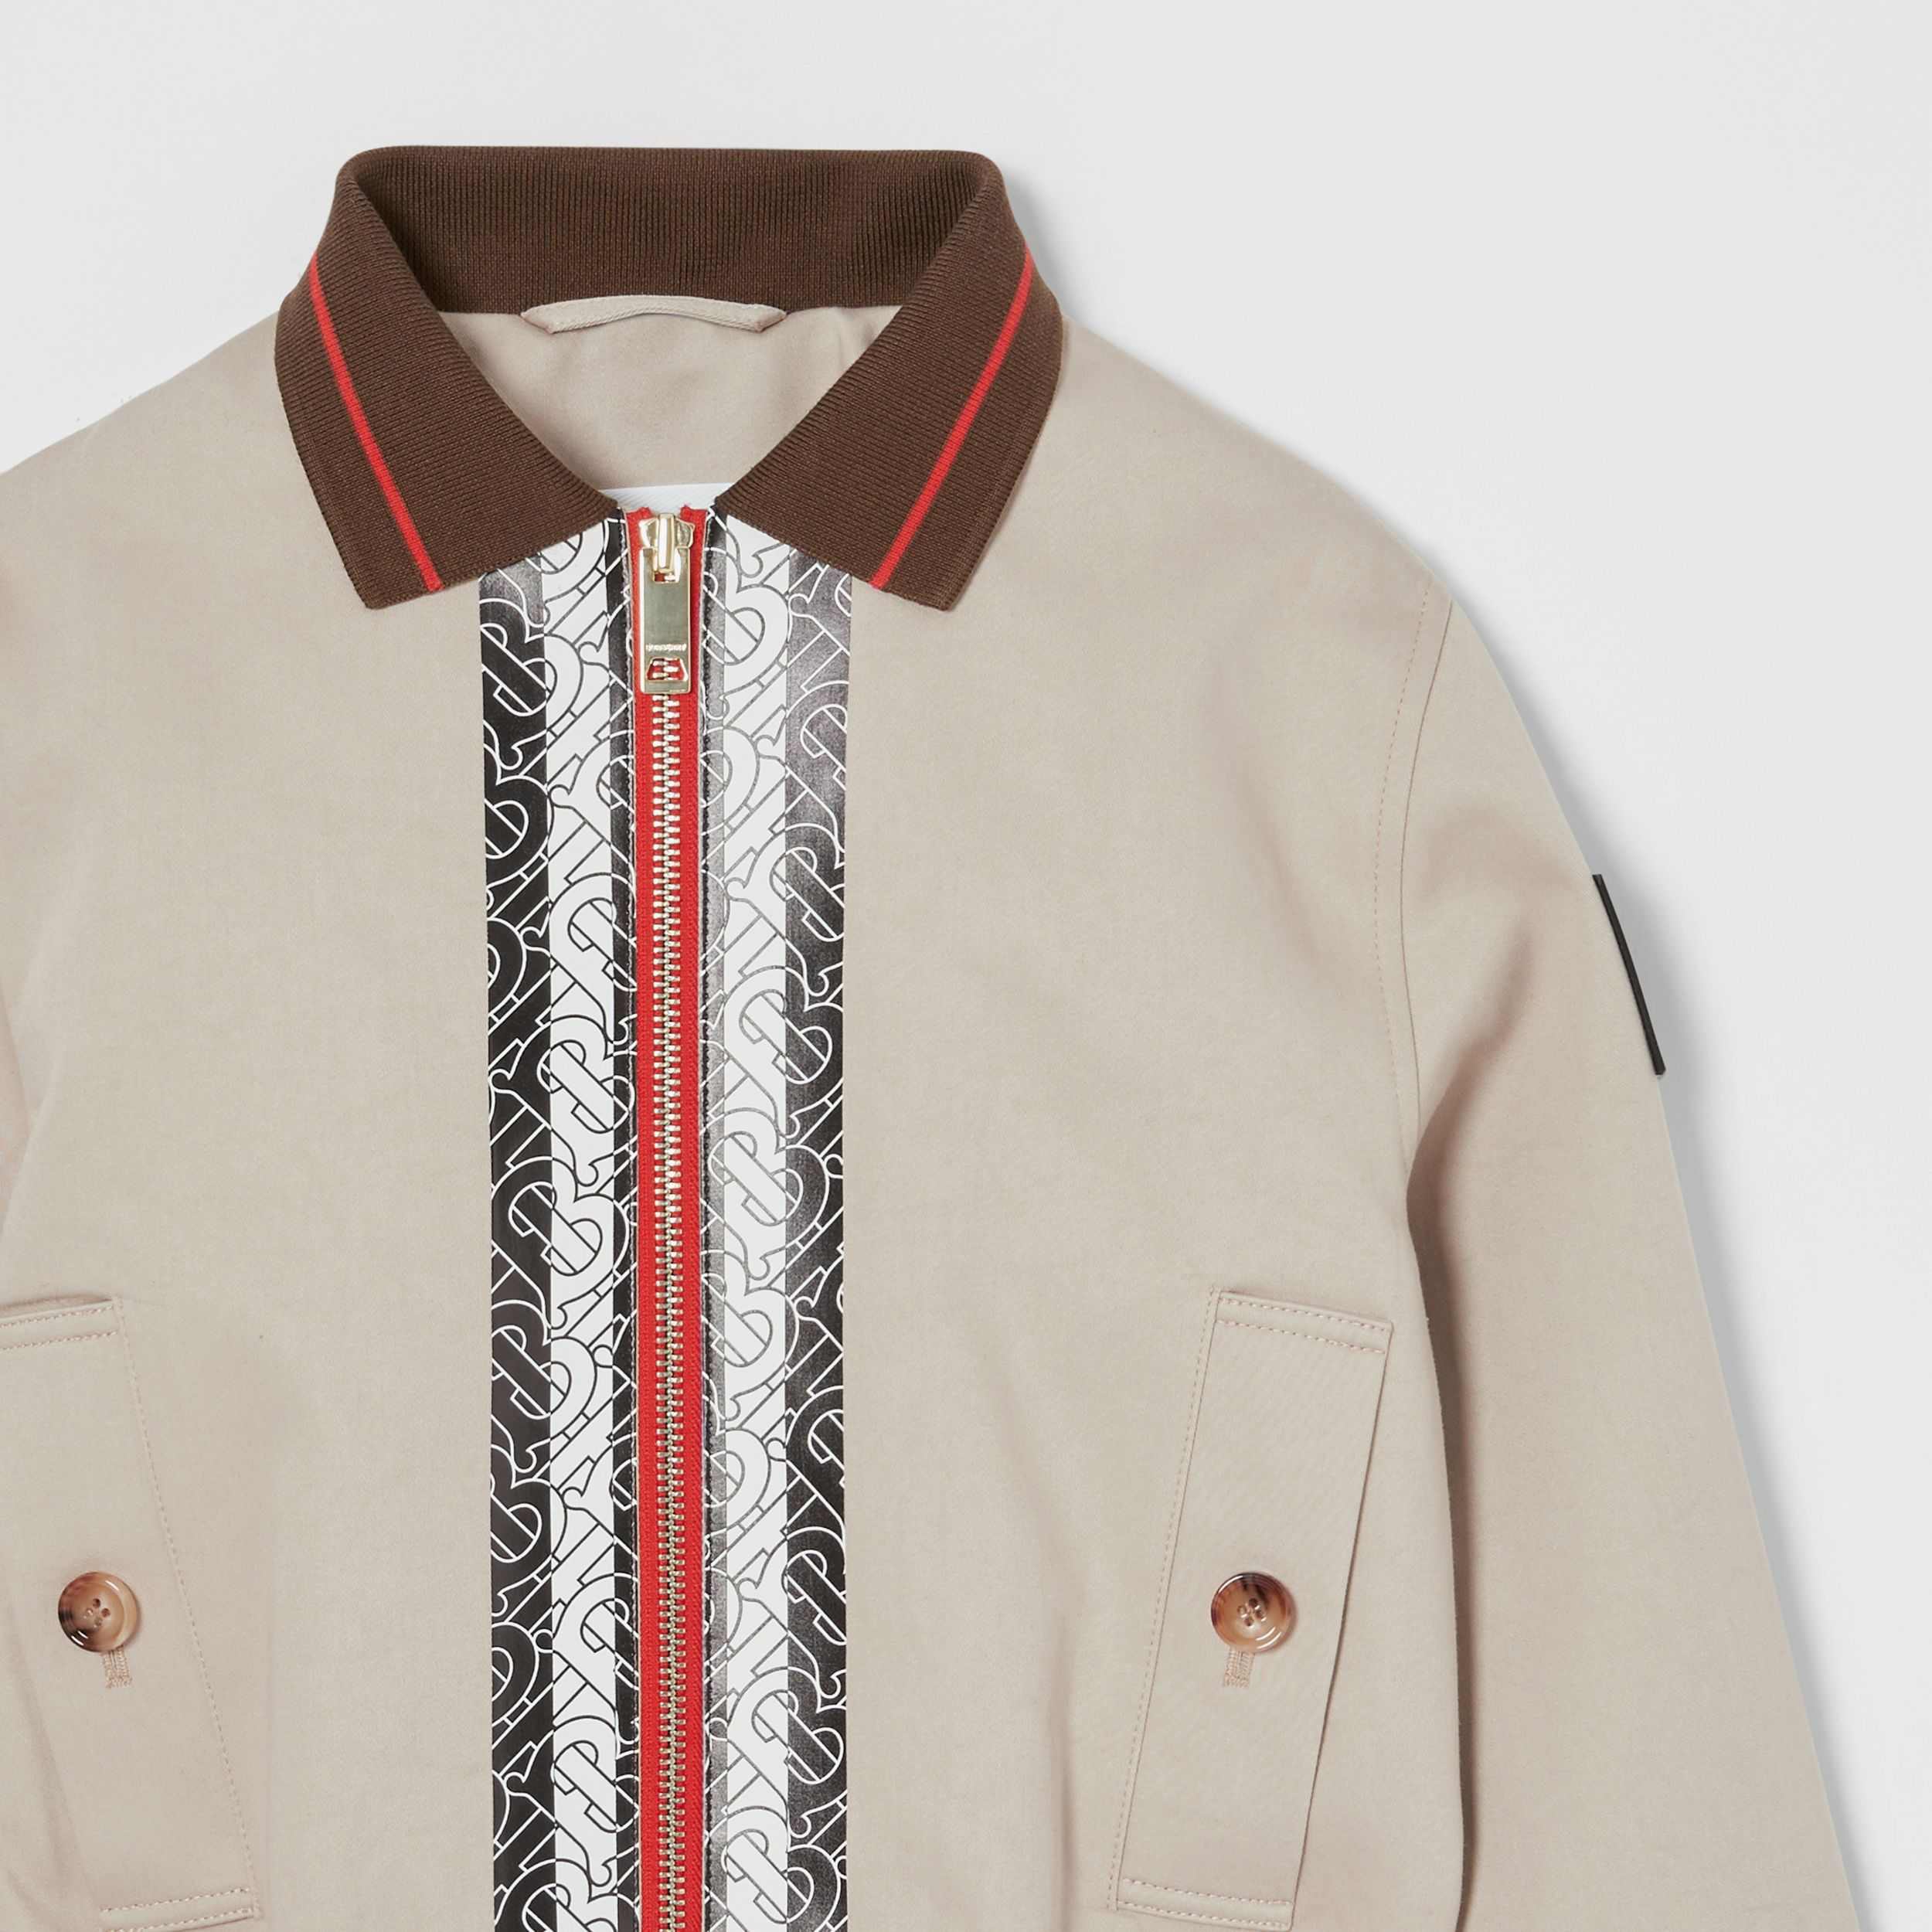 Monogram Stripe Print Cotton Harrington Jacket in Stone | Burberry - 4